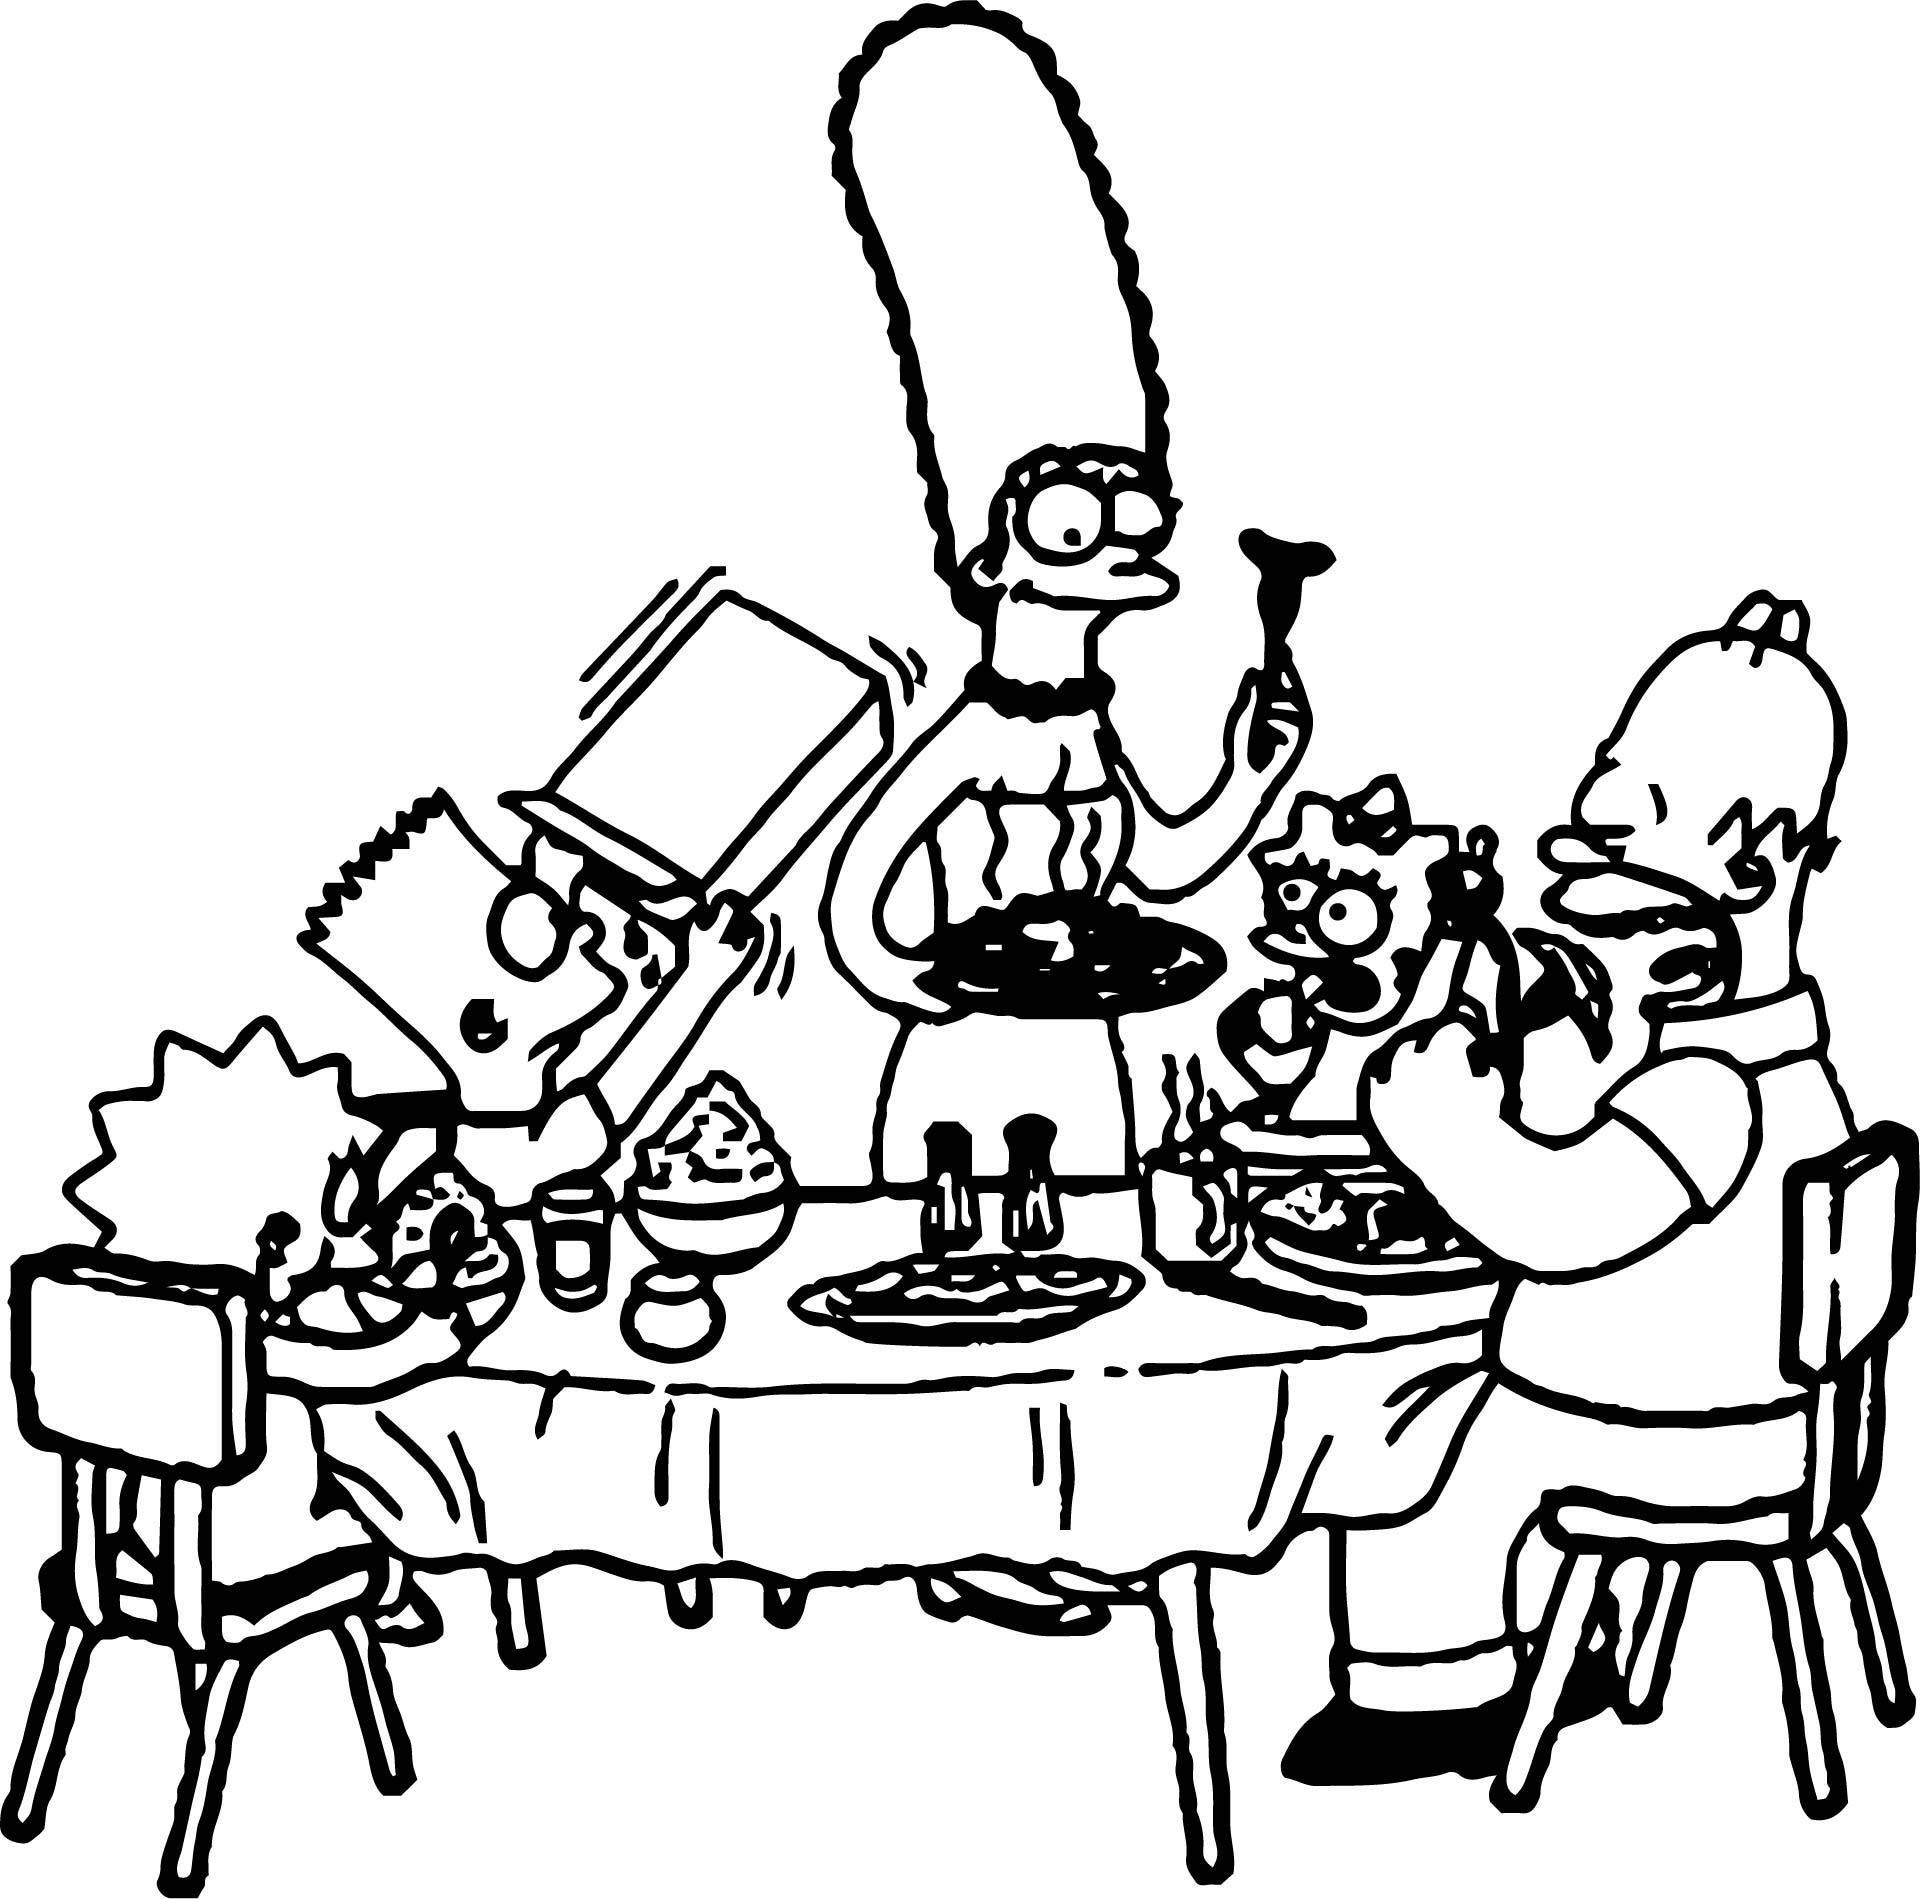 The Simpsons Coloring Page 006 Wecoloringpage Com